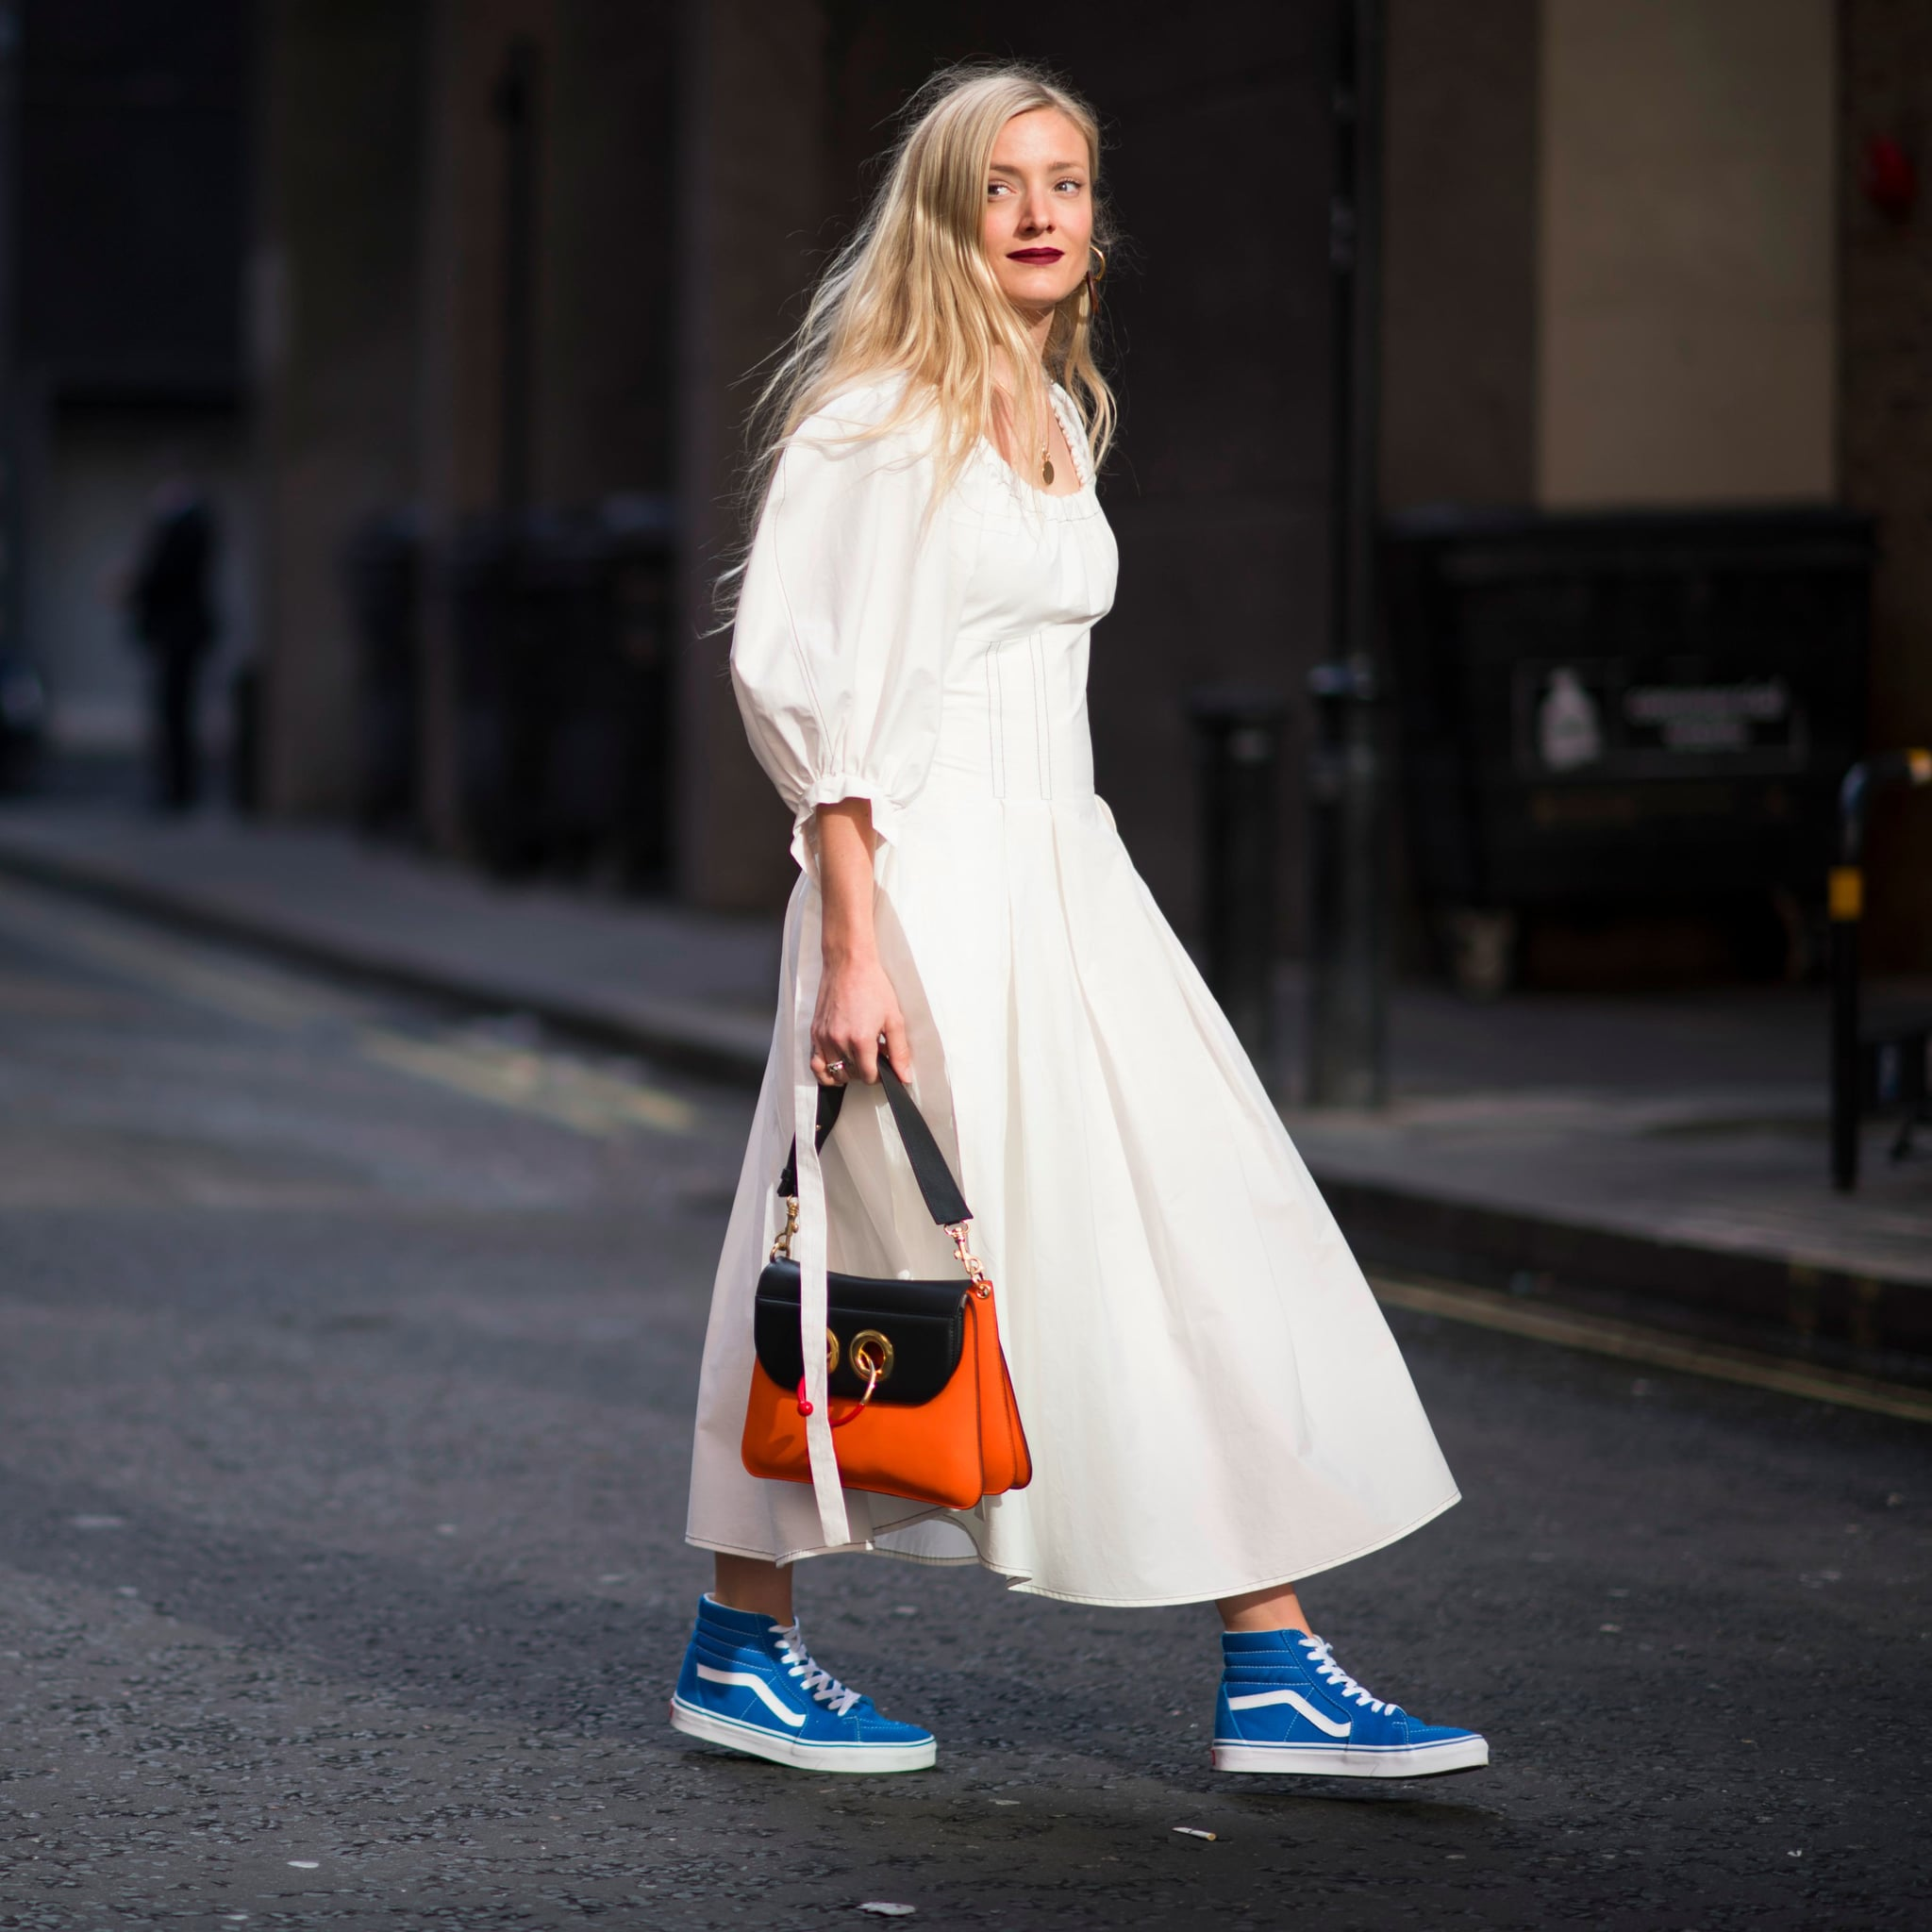 How to: Pairing Sneakers With Dresses